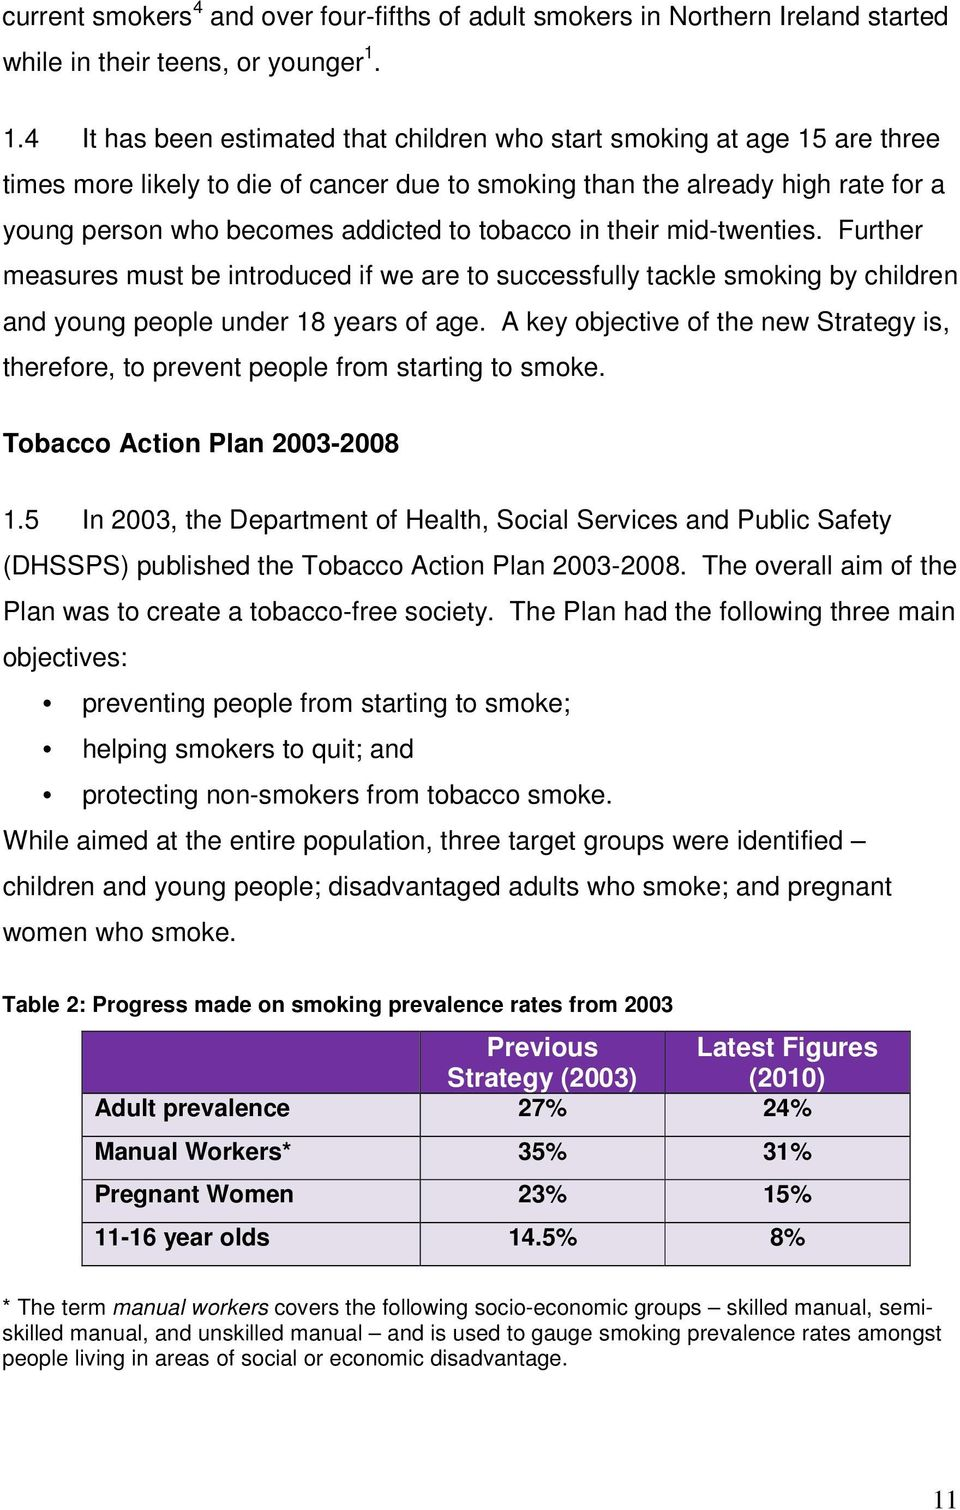 tobacco in their mid-twenties. Further measures must be introduced if we are to successfully tackle smoking by children and young people under 18 years of age.